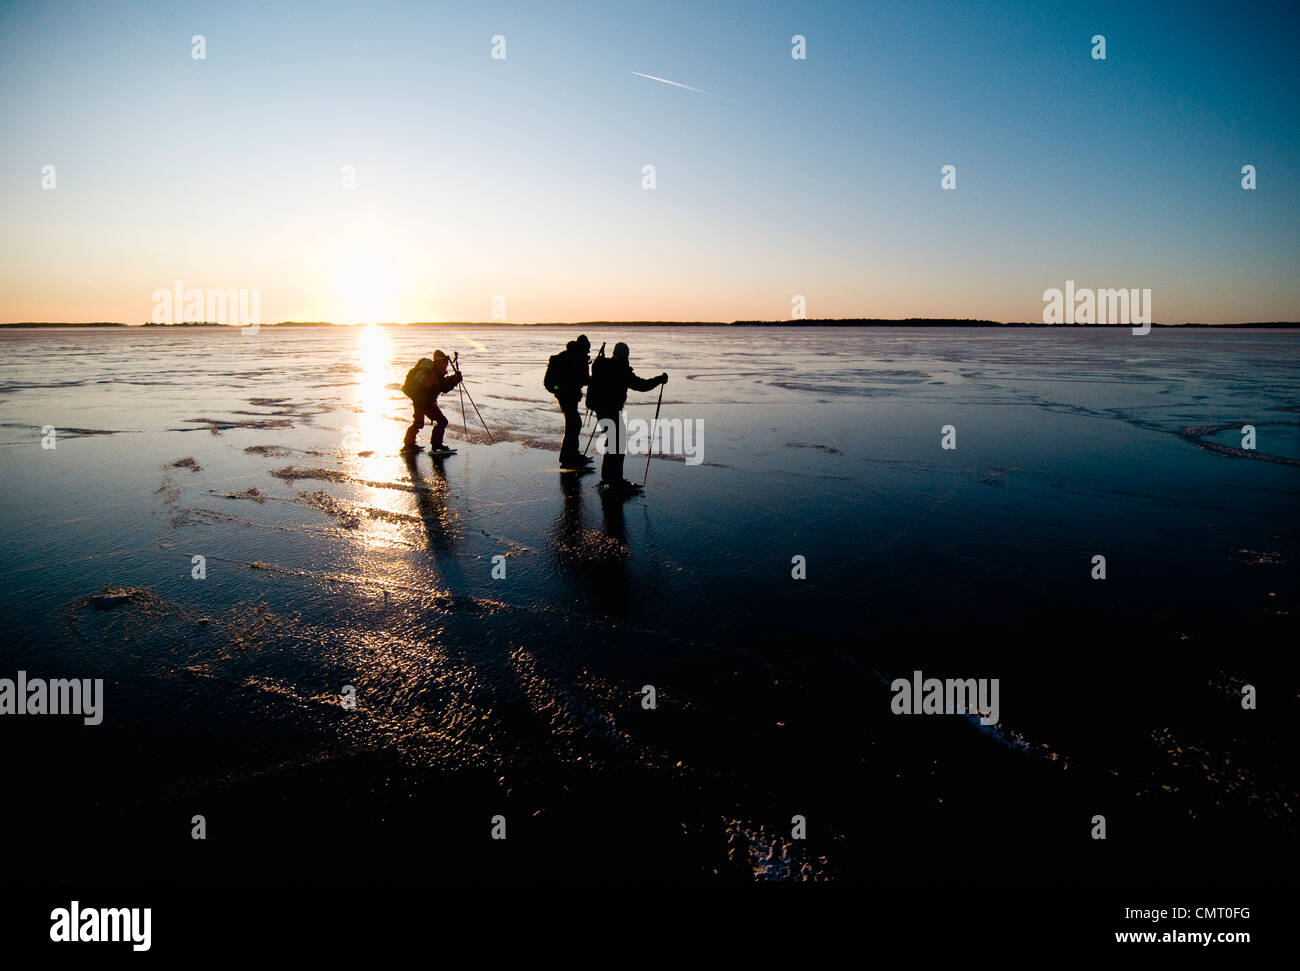 Long-distance skaters against clear sky - Stock Image